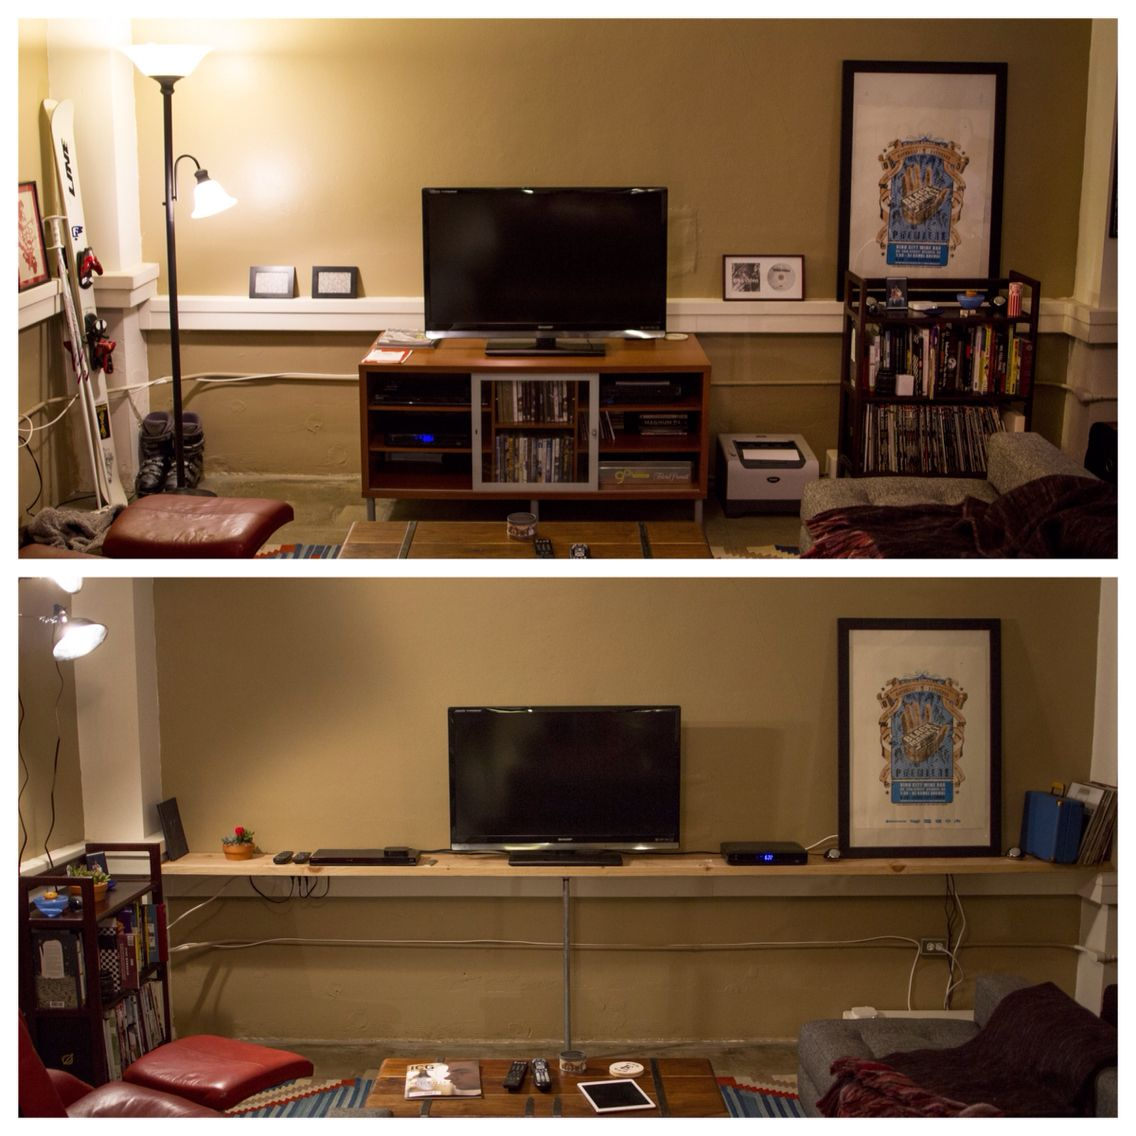 Before and after. Still working on the wiring.